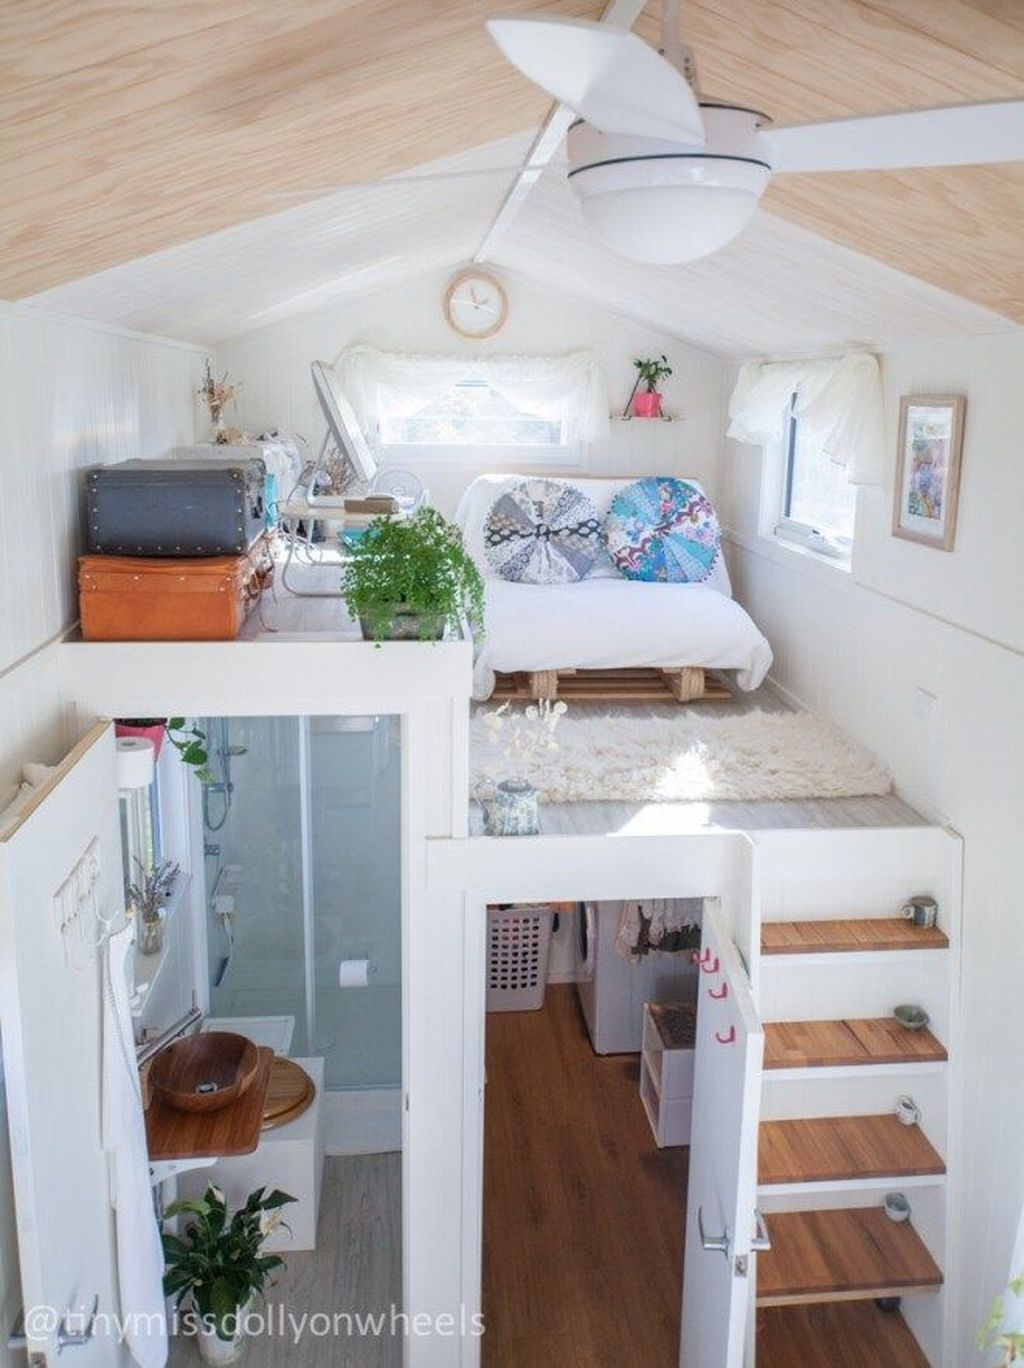 42 Awesome Tiny House Ideas Trendehouse Tiny House Remodel